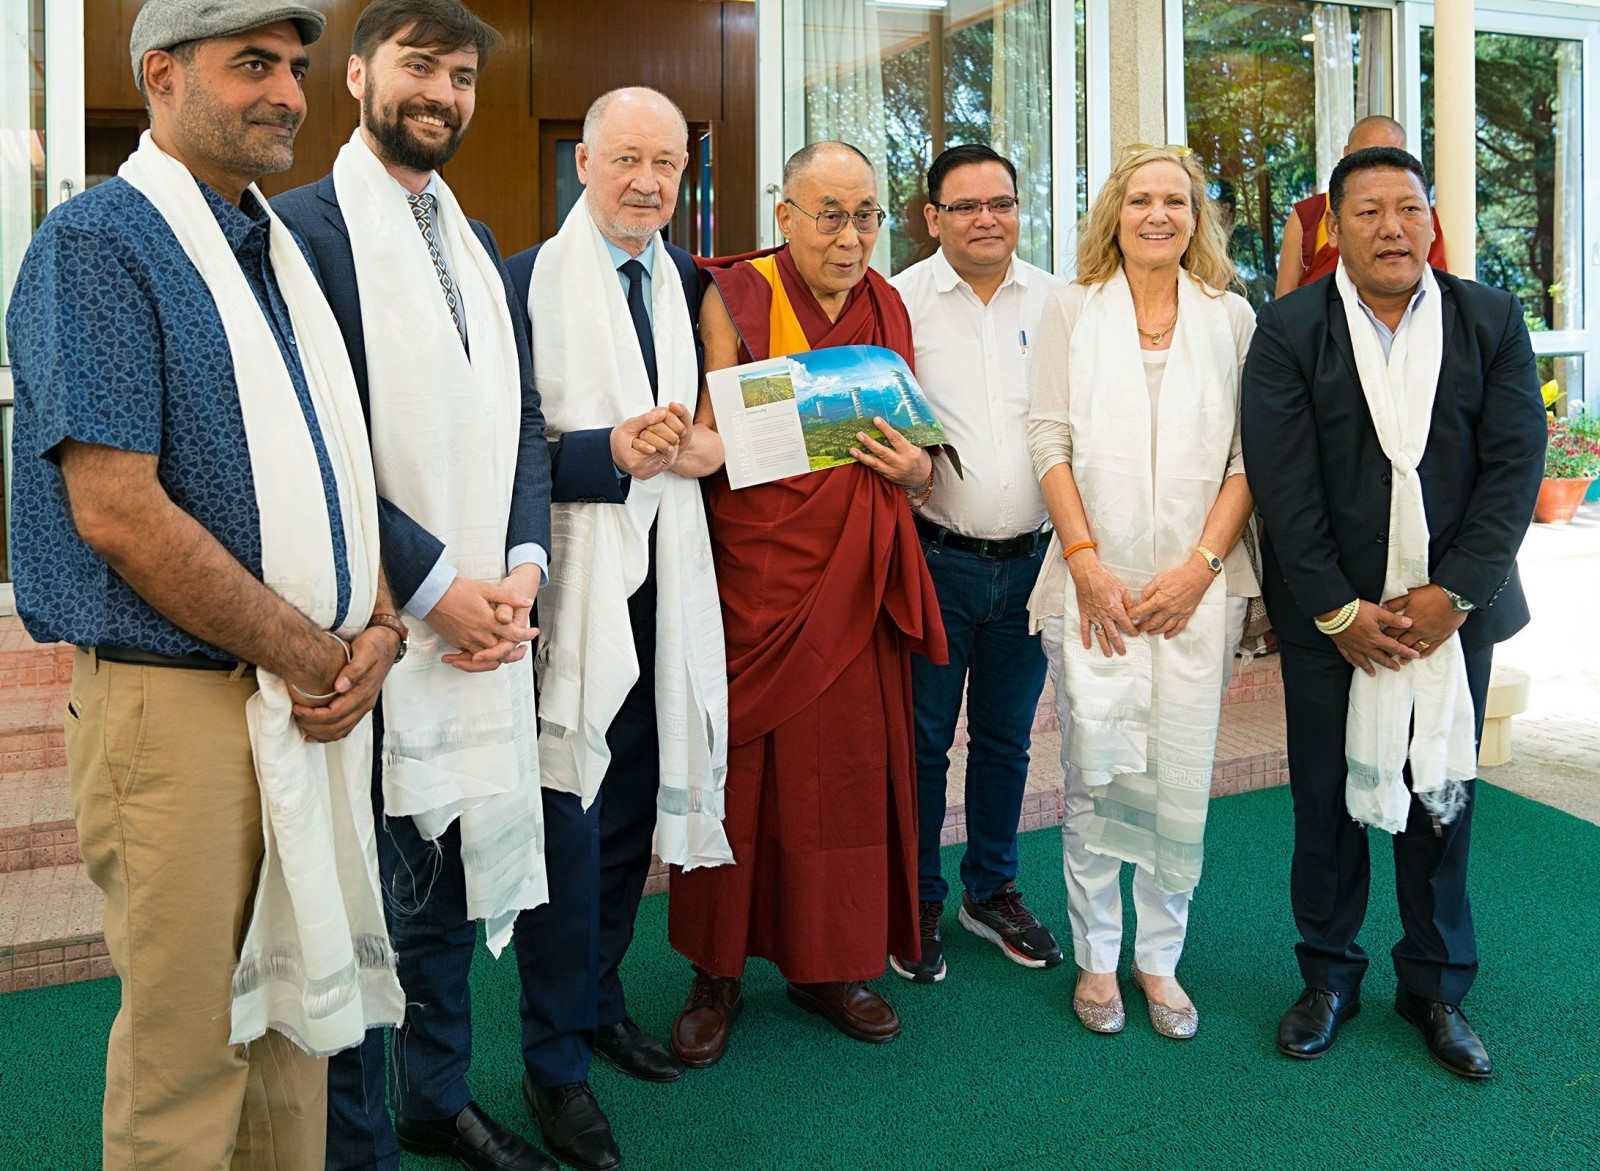 Dalai Lama's Meeting with Anatoly Yunitskiy ― Coincidence or Consistent Pattern?